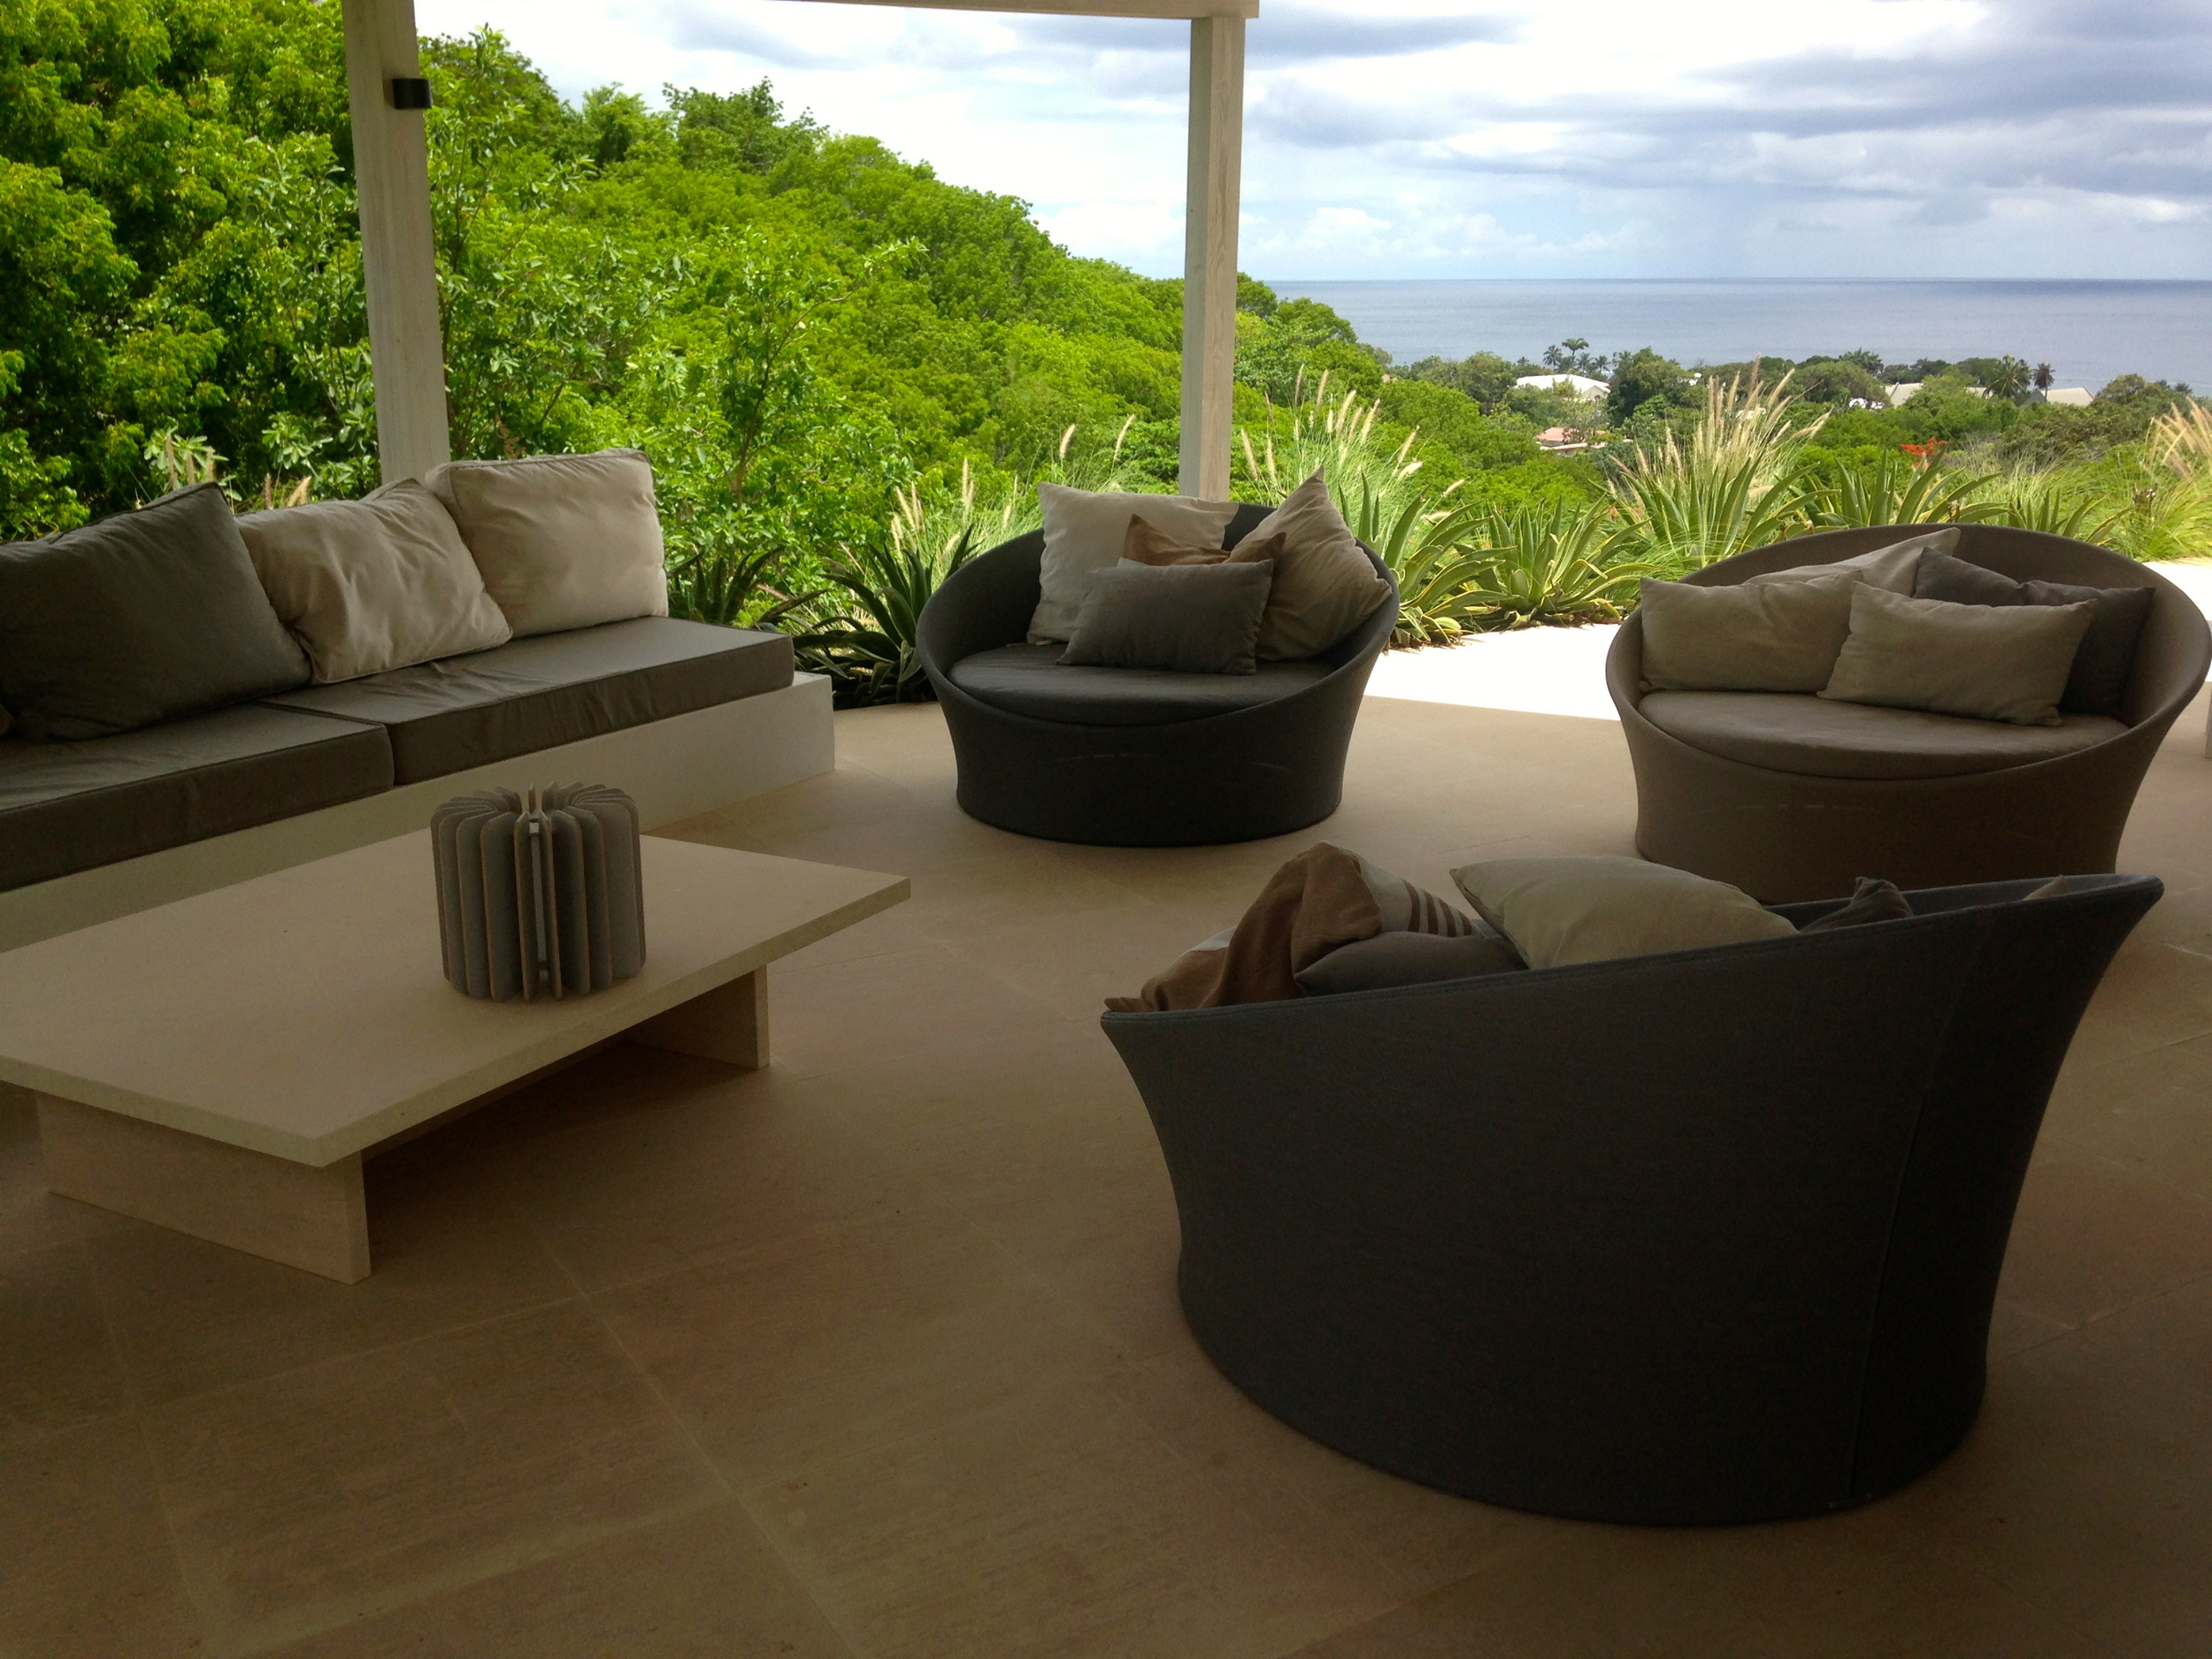 Furniture supplied by Faro